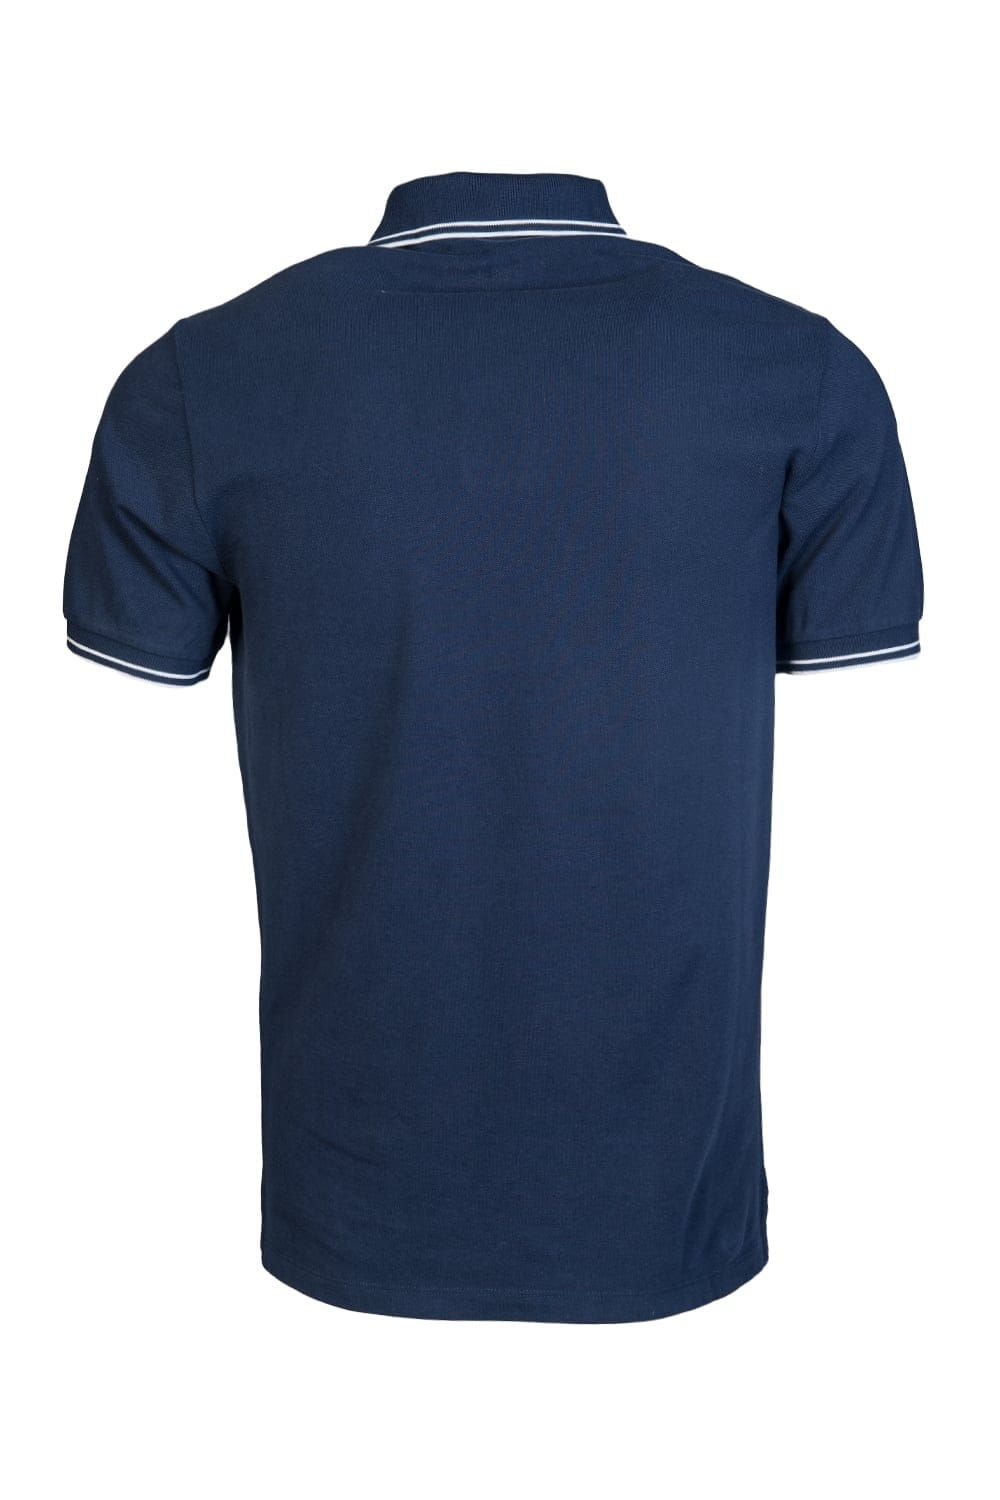 stone island polo t shirt 651522s18 stone island from sage clothing uk. Black Bedroom Furniture Sets. Home Design Ideas